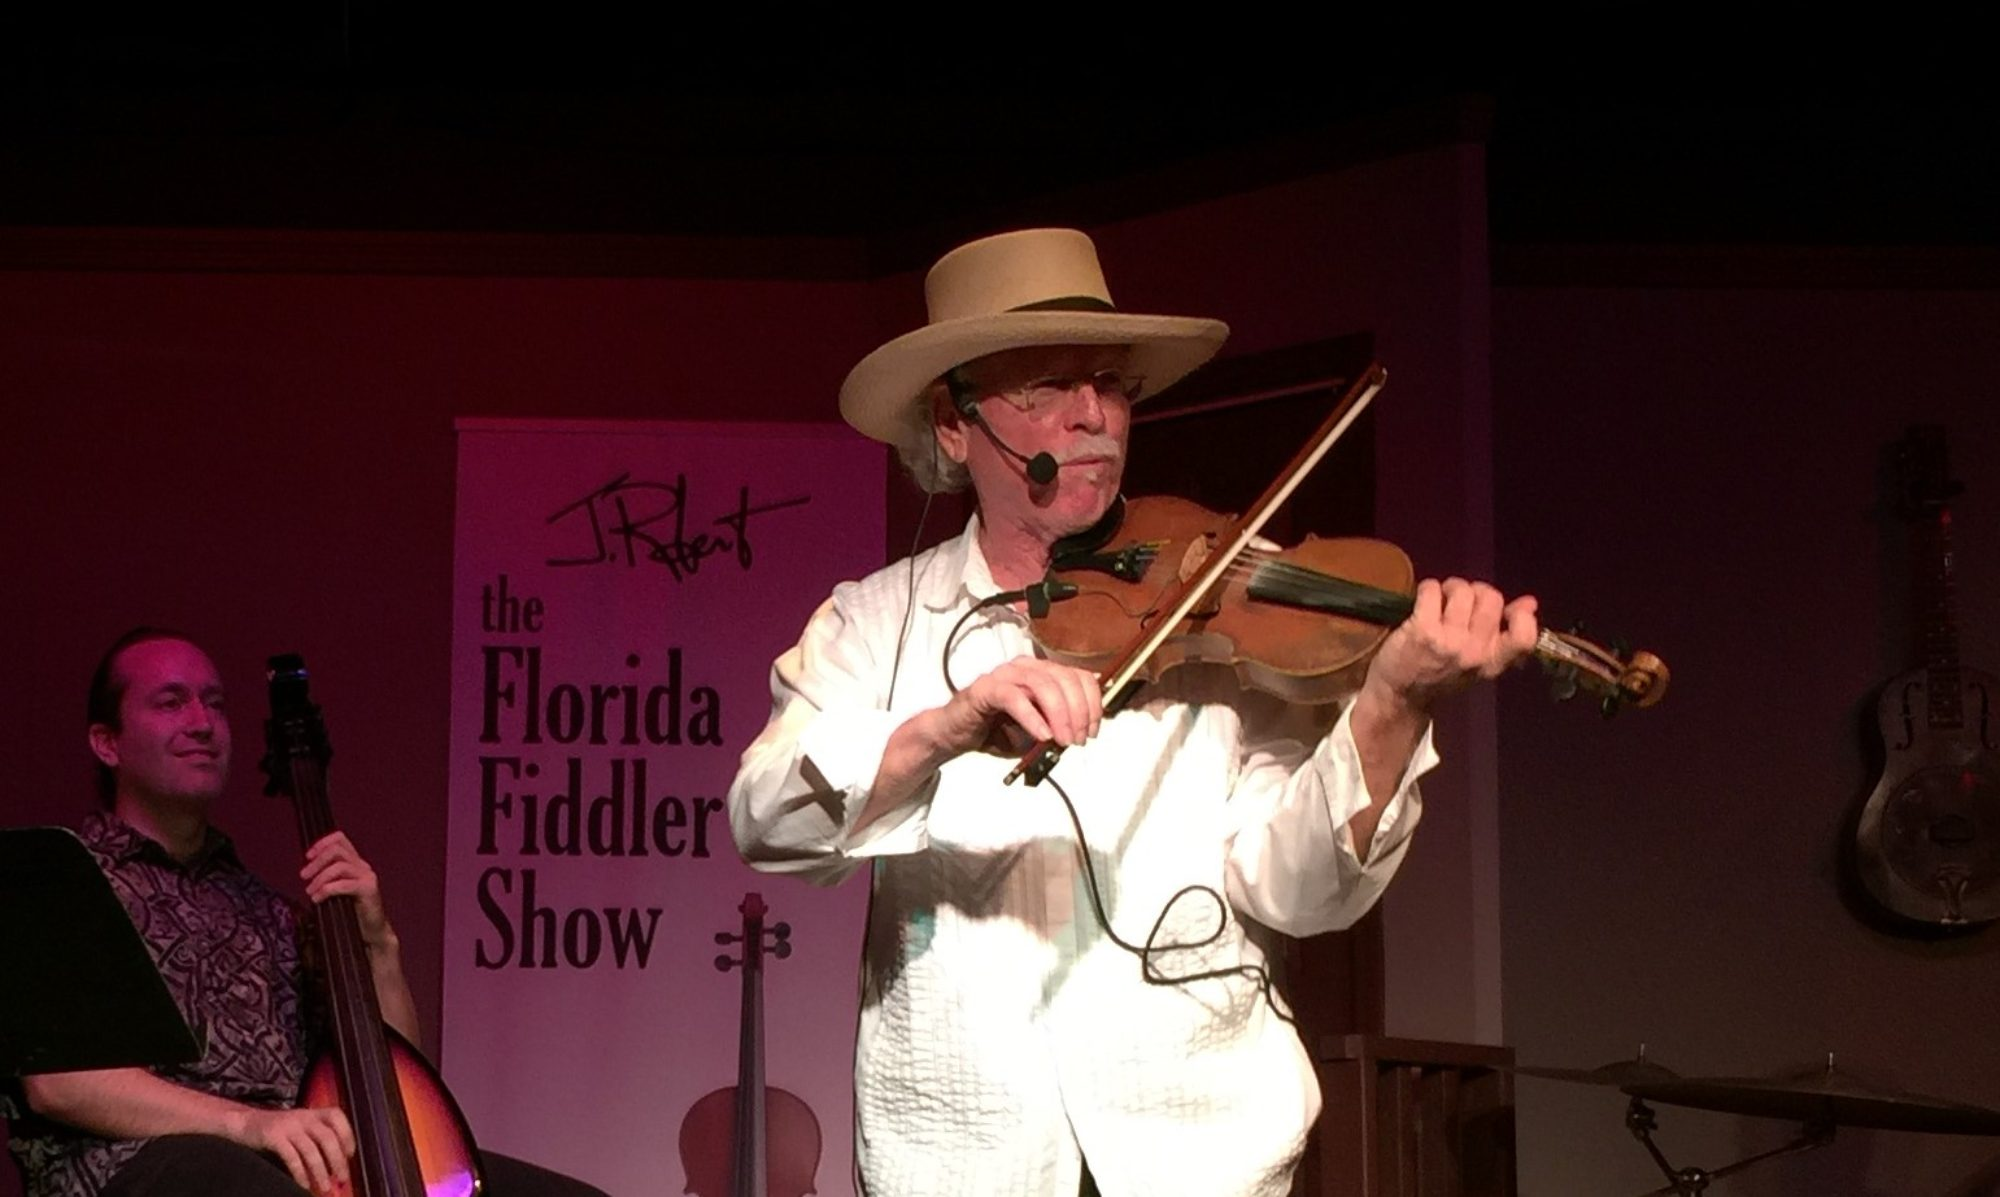 J.Robert's Florida Fiddler Show